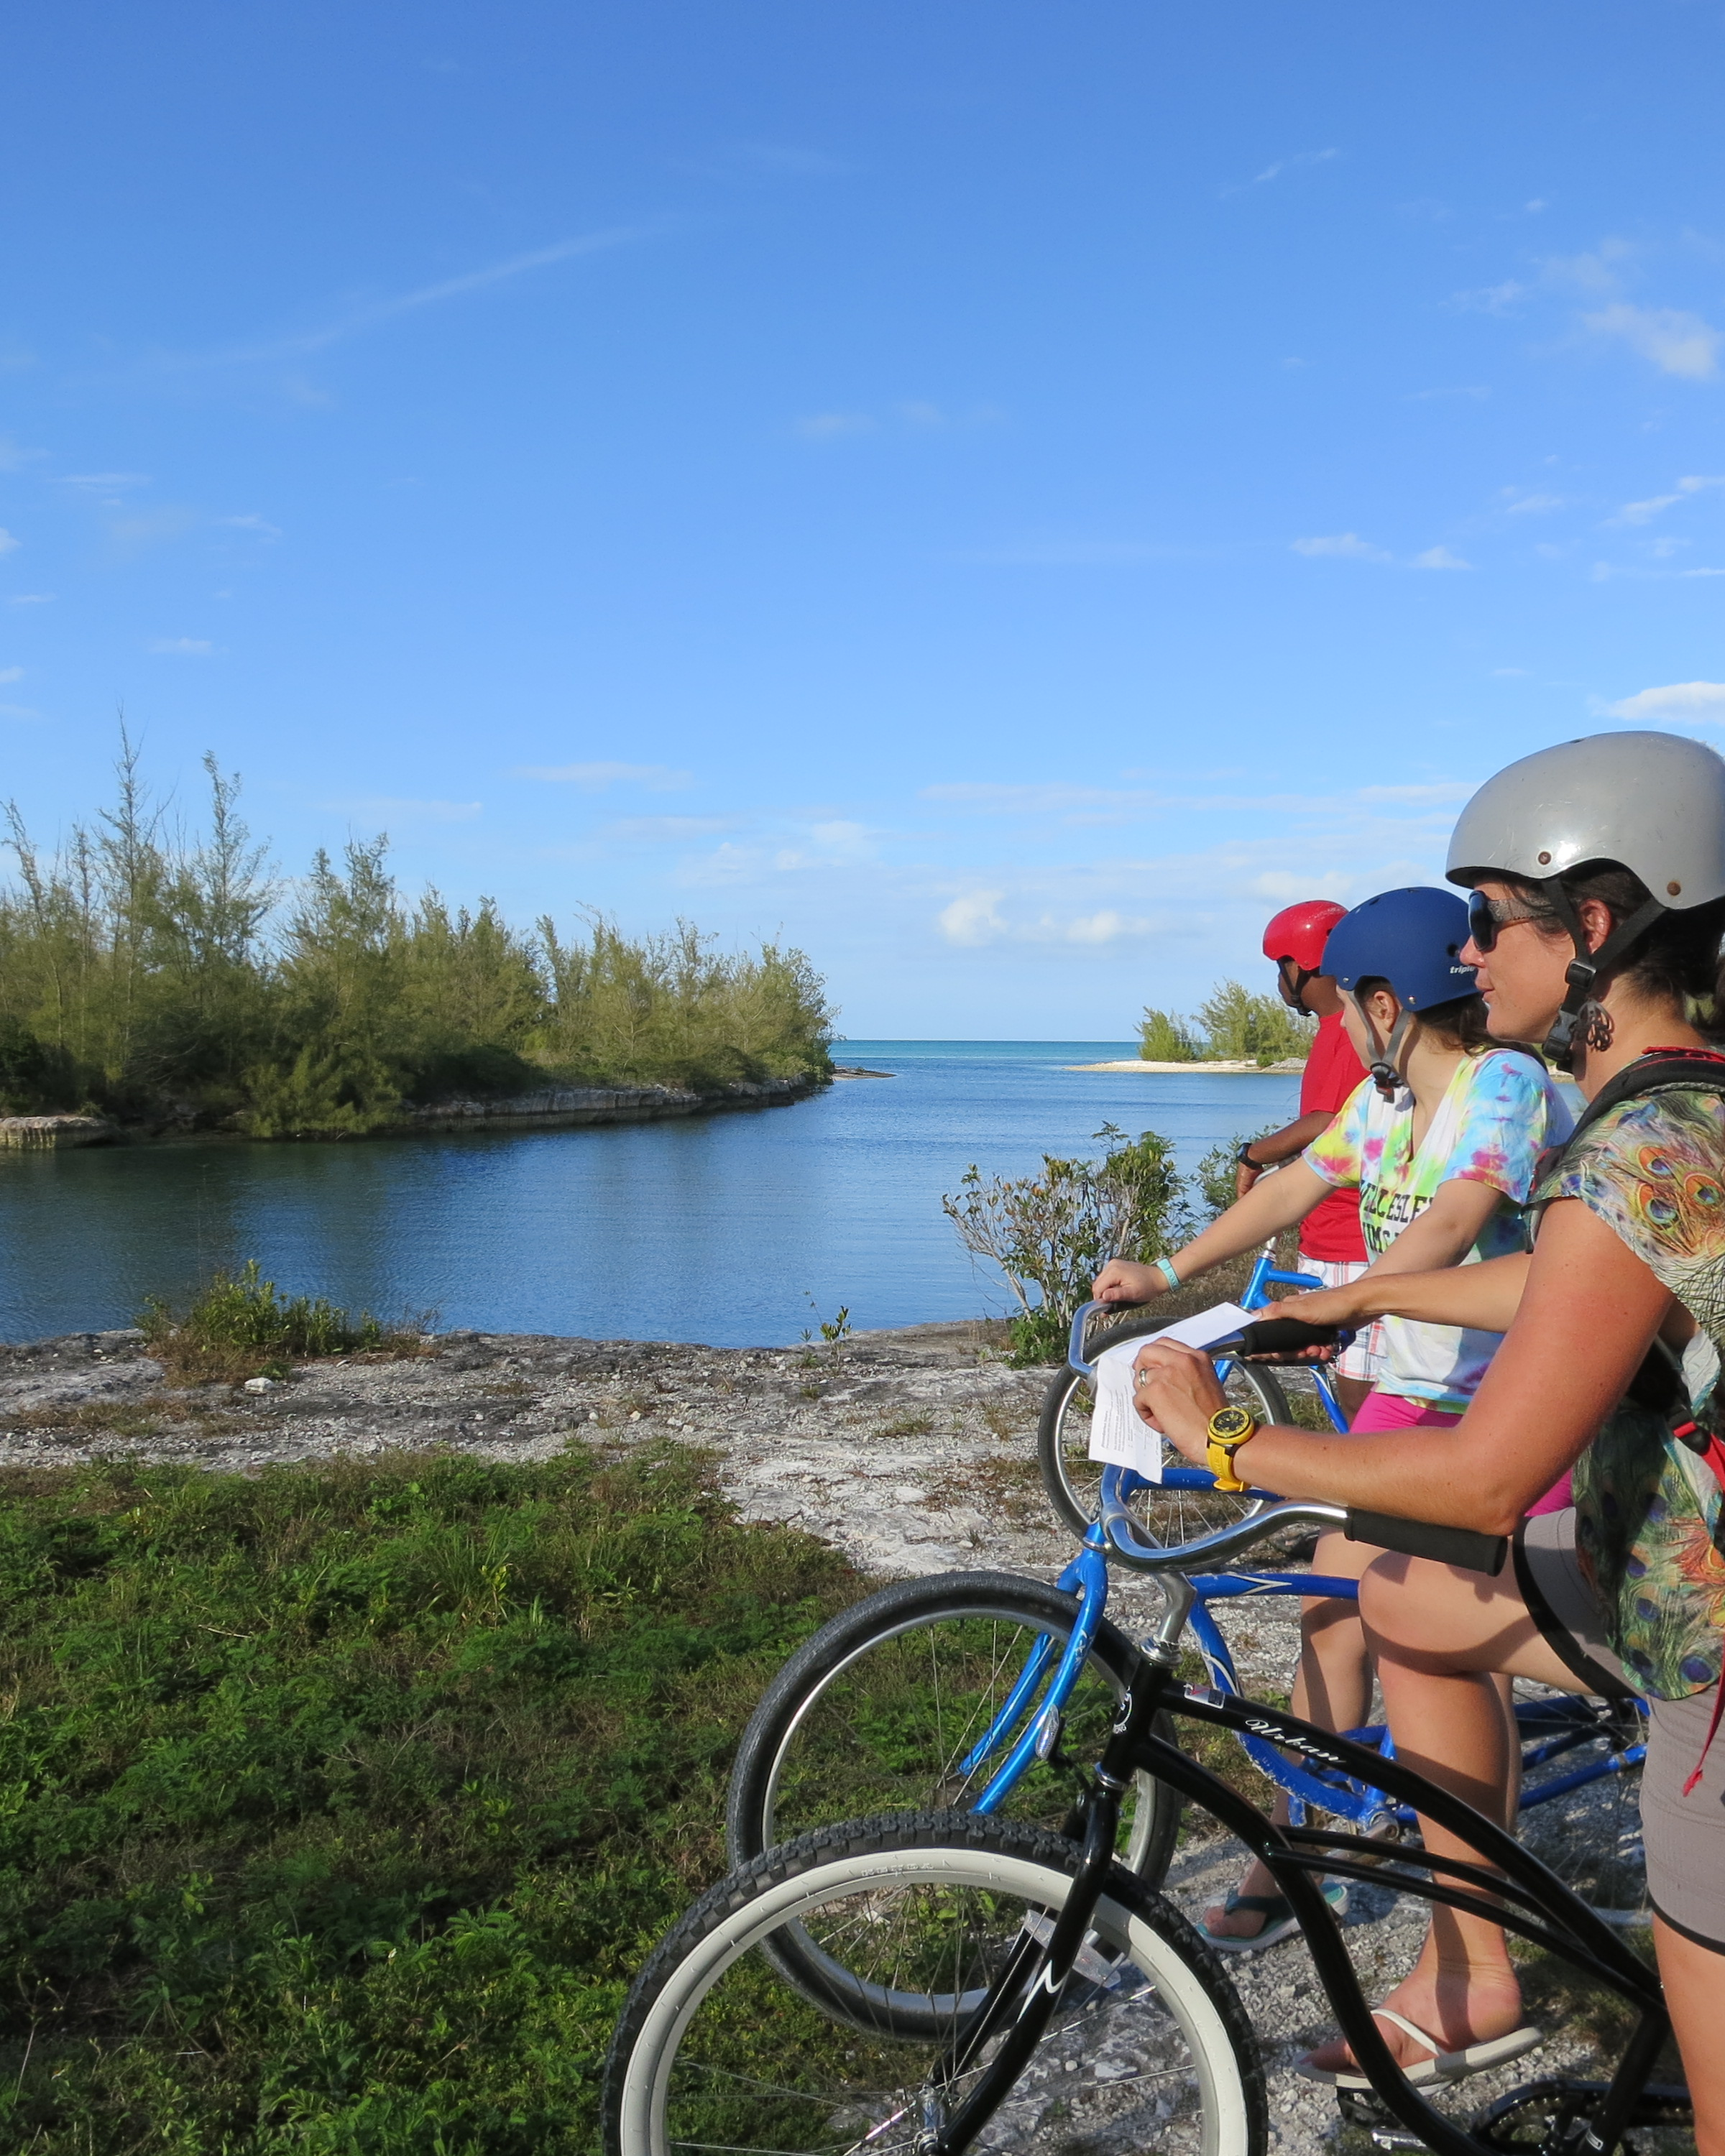 Yesterday we toured Cape Eleuthera on our bikes with our advisory groups.